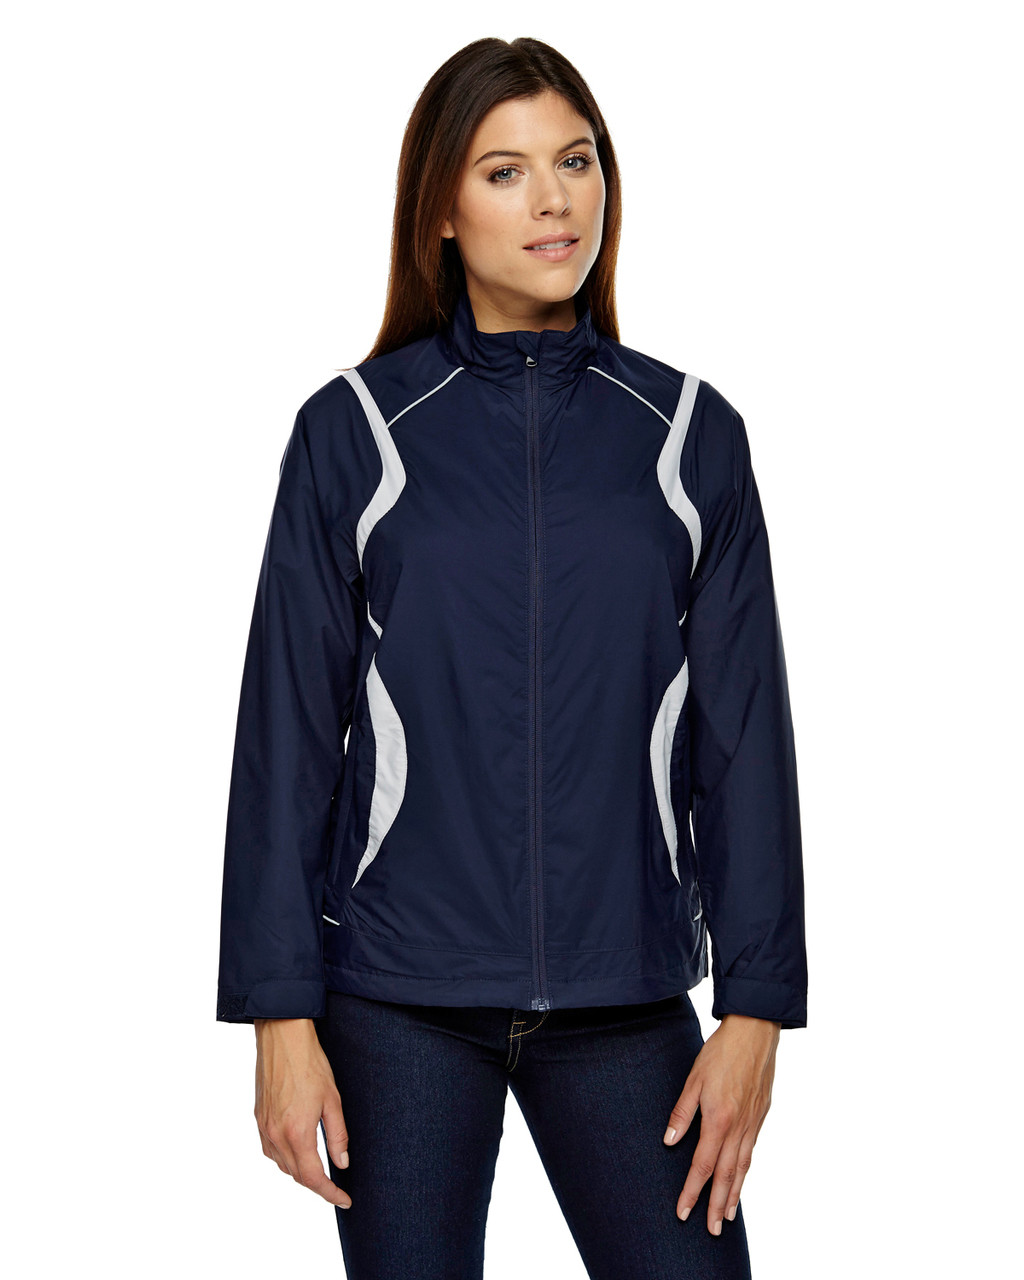 Classic Navy 78167 North End Venture Lightweight Mini Ottoman Jacket | Blankclothing.ca